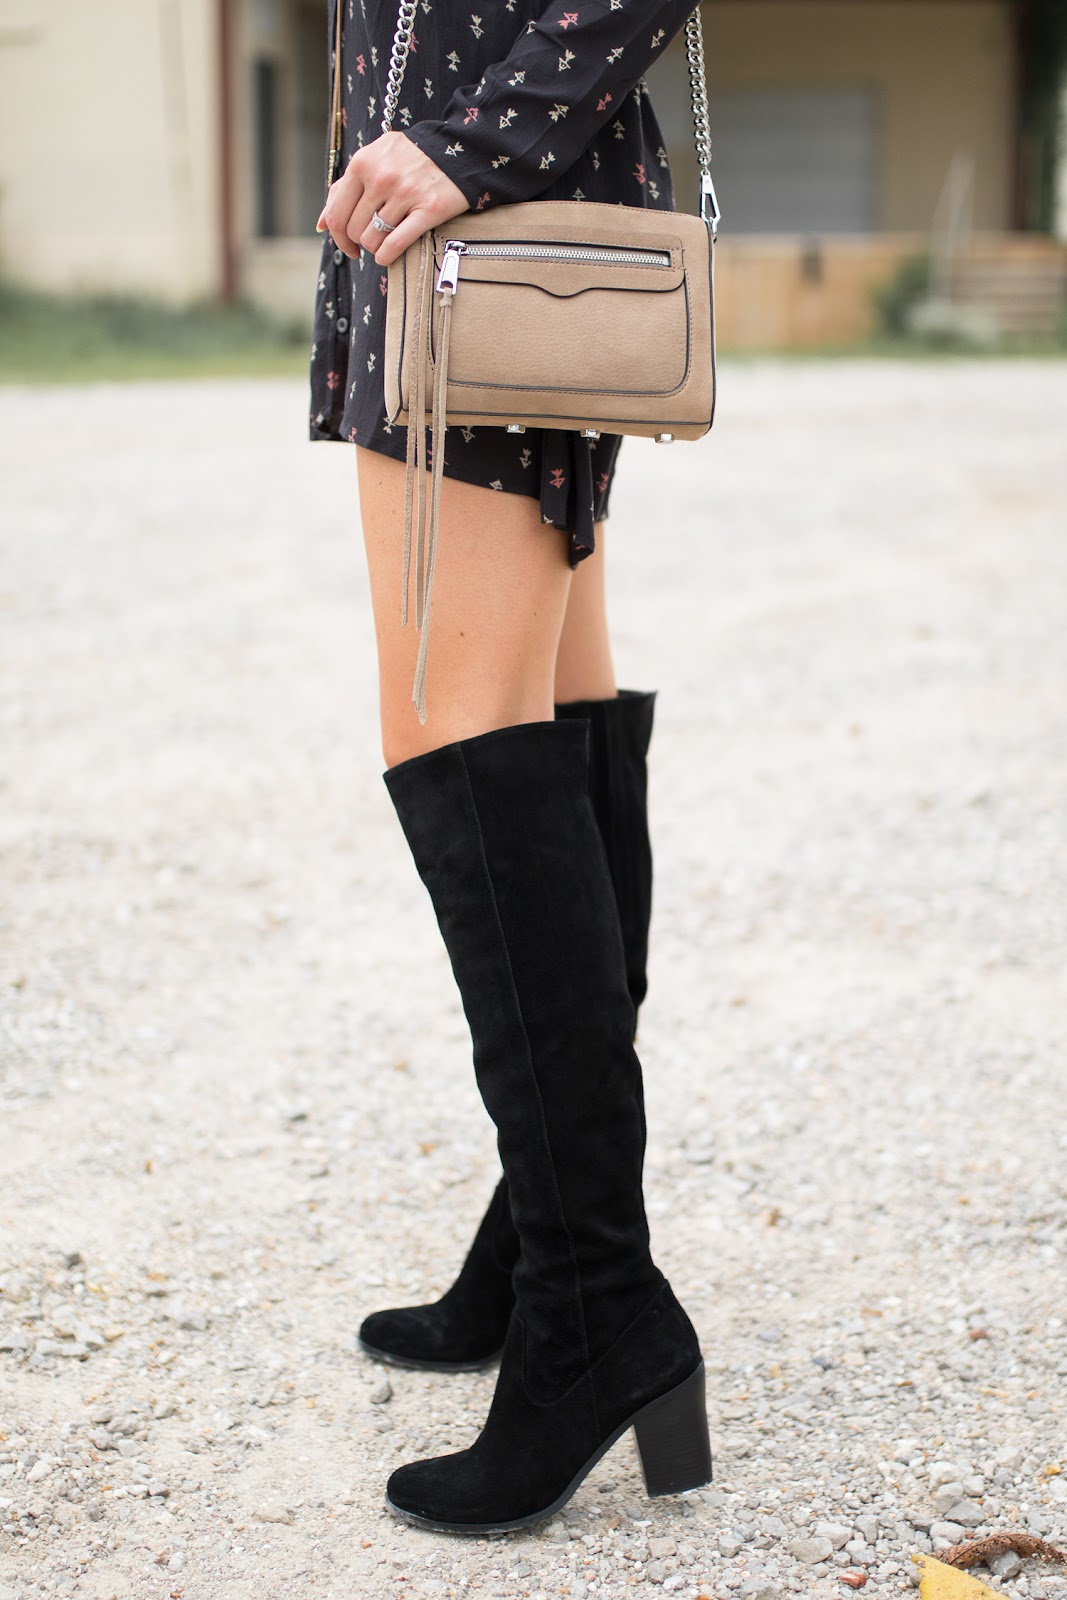 20 over-the-knee boots under $150